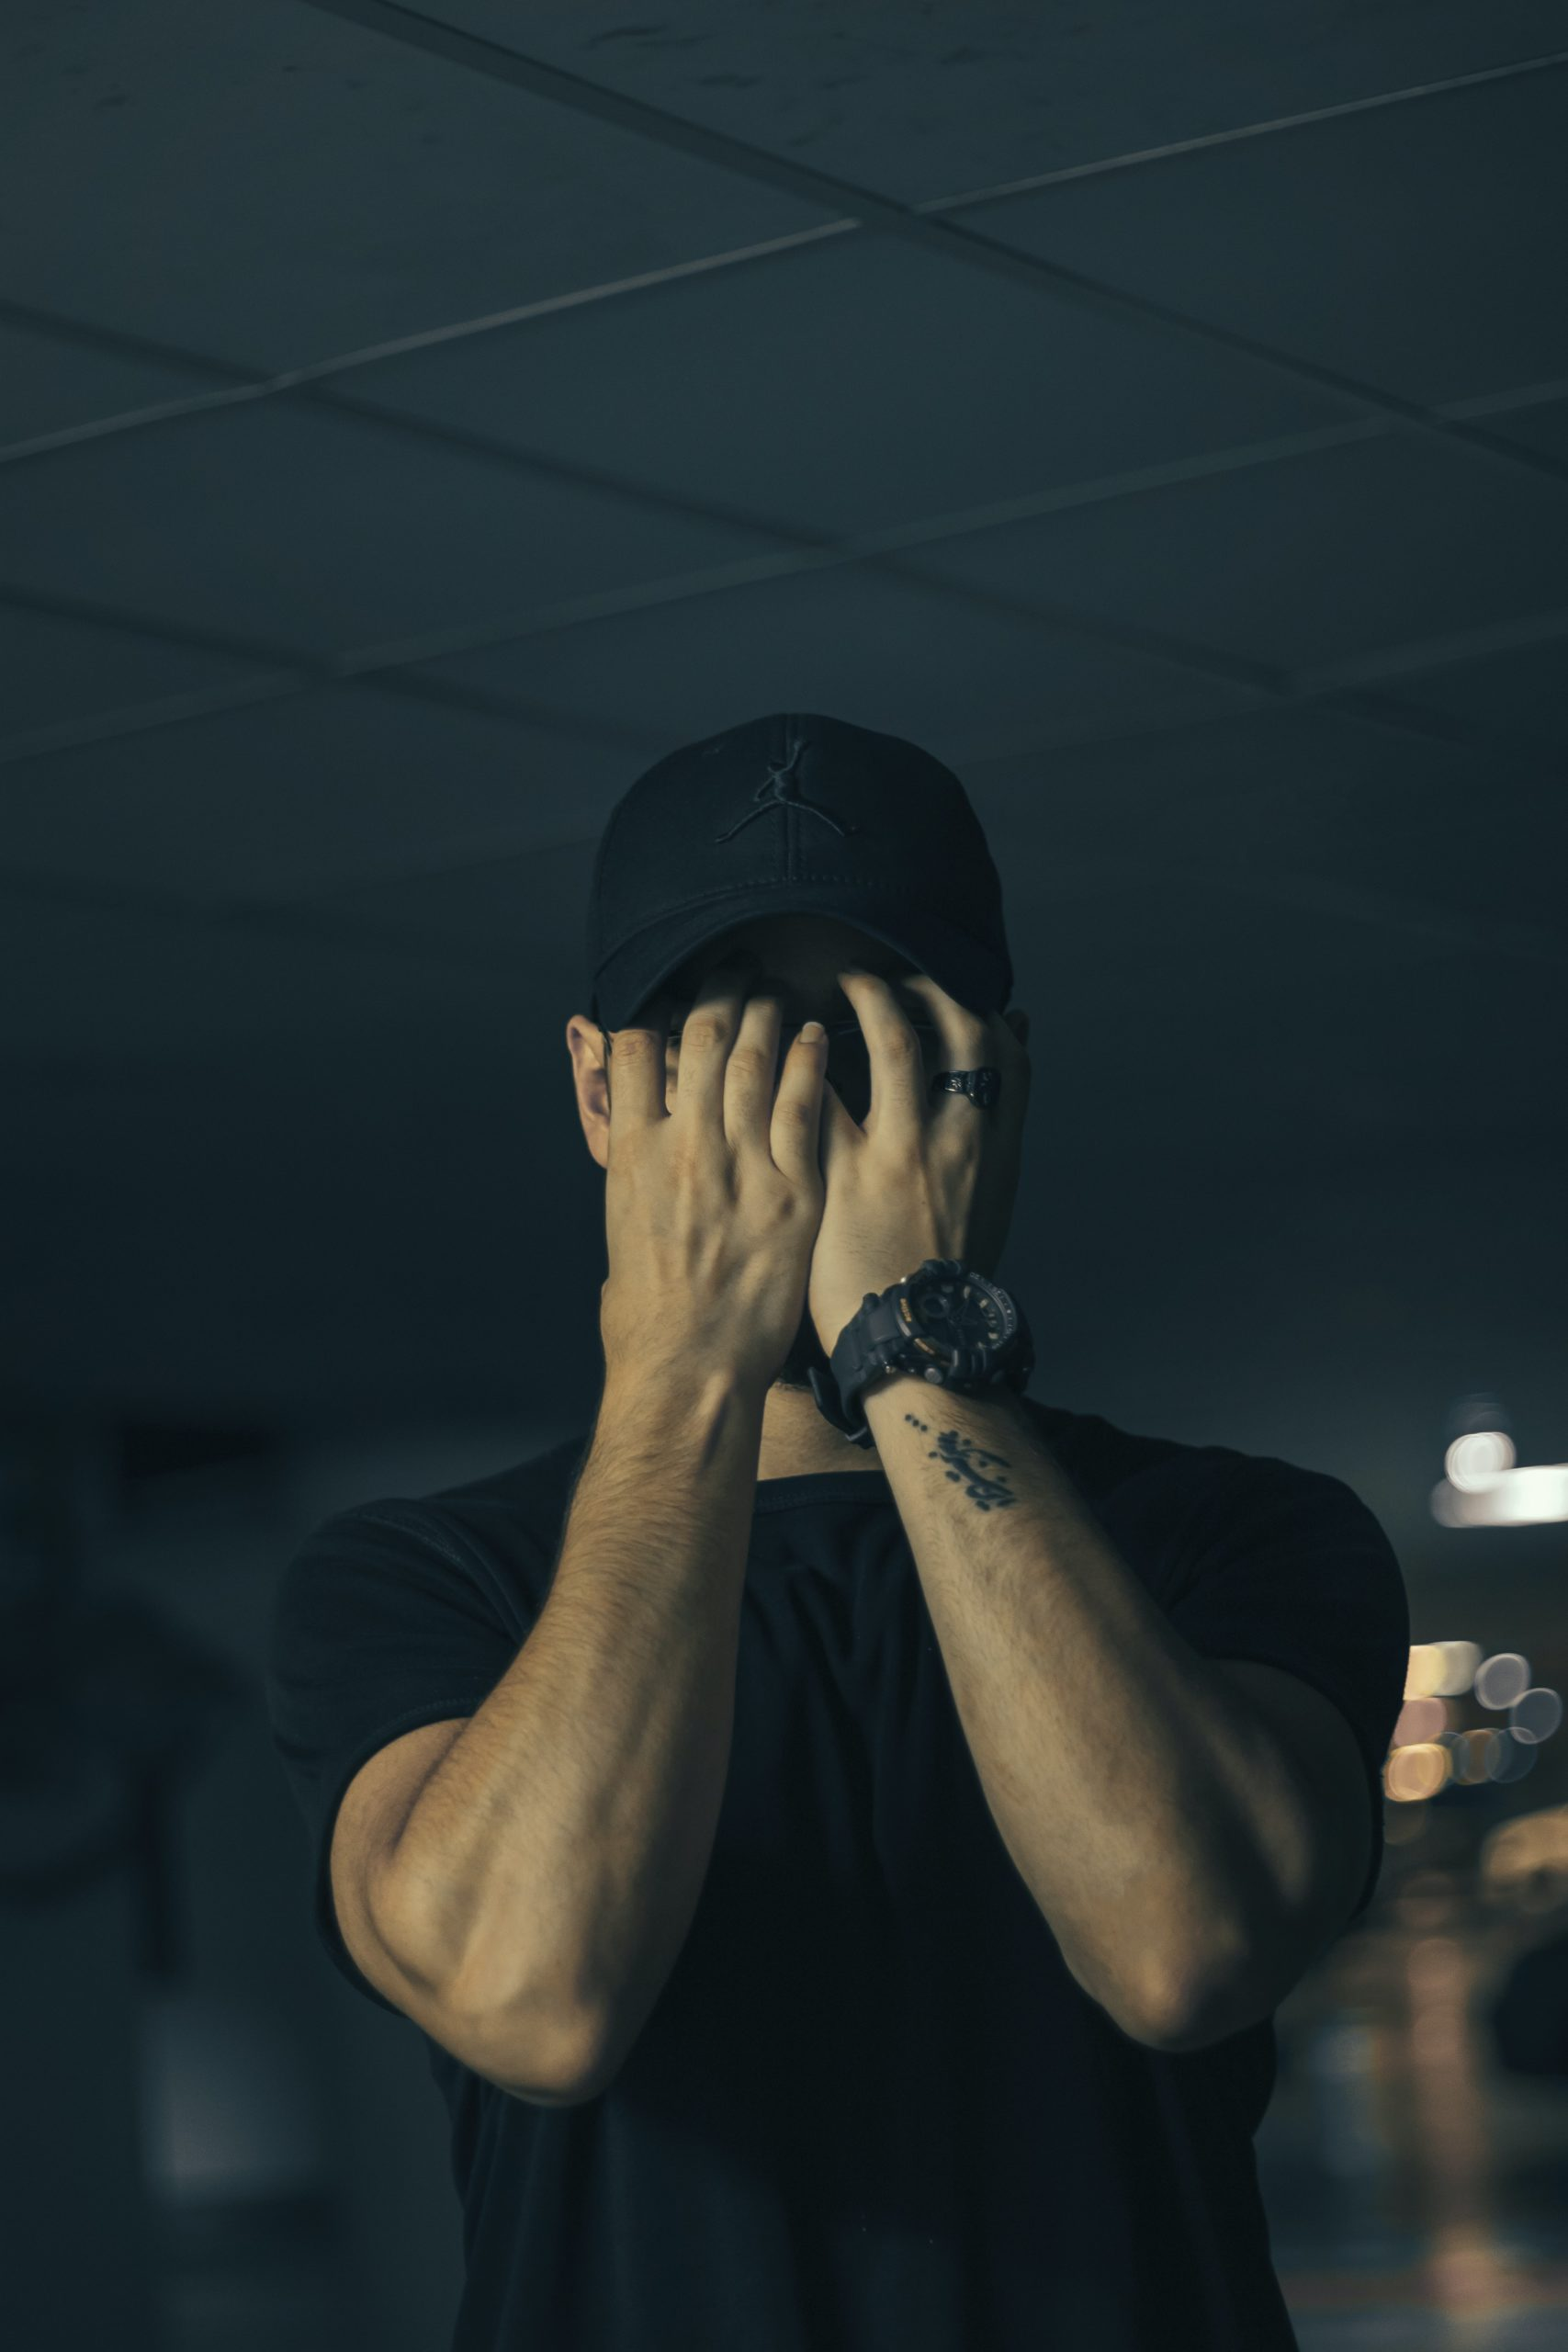 A man holding his face in his hands